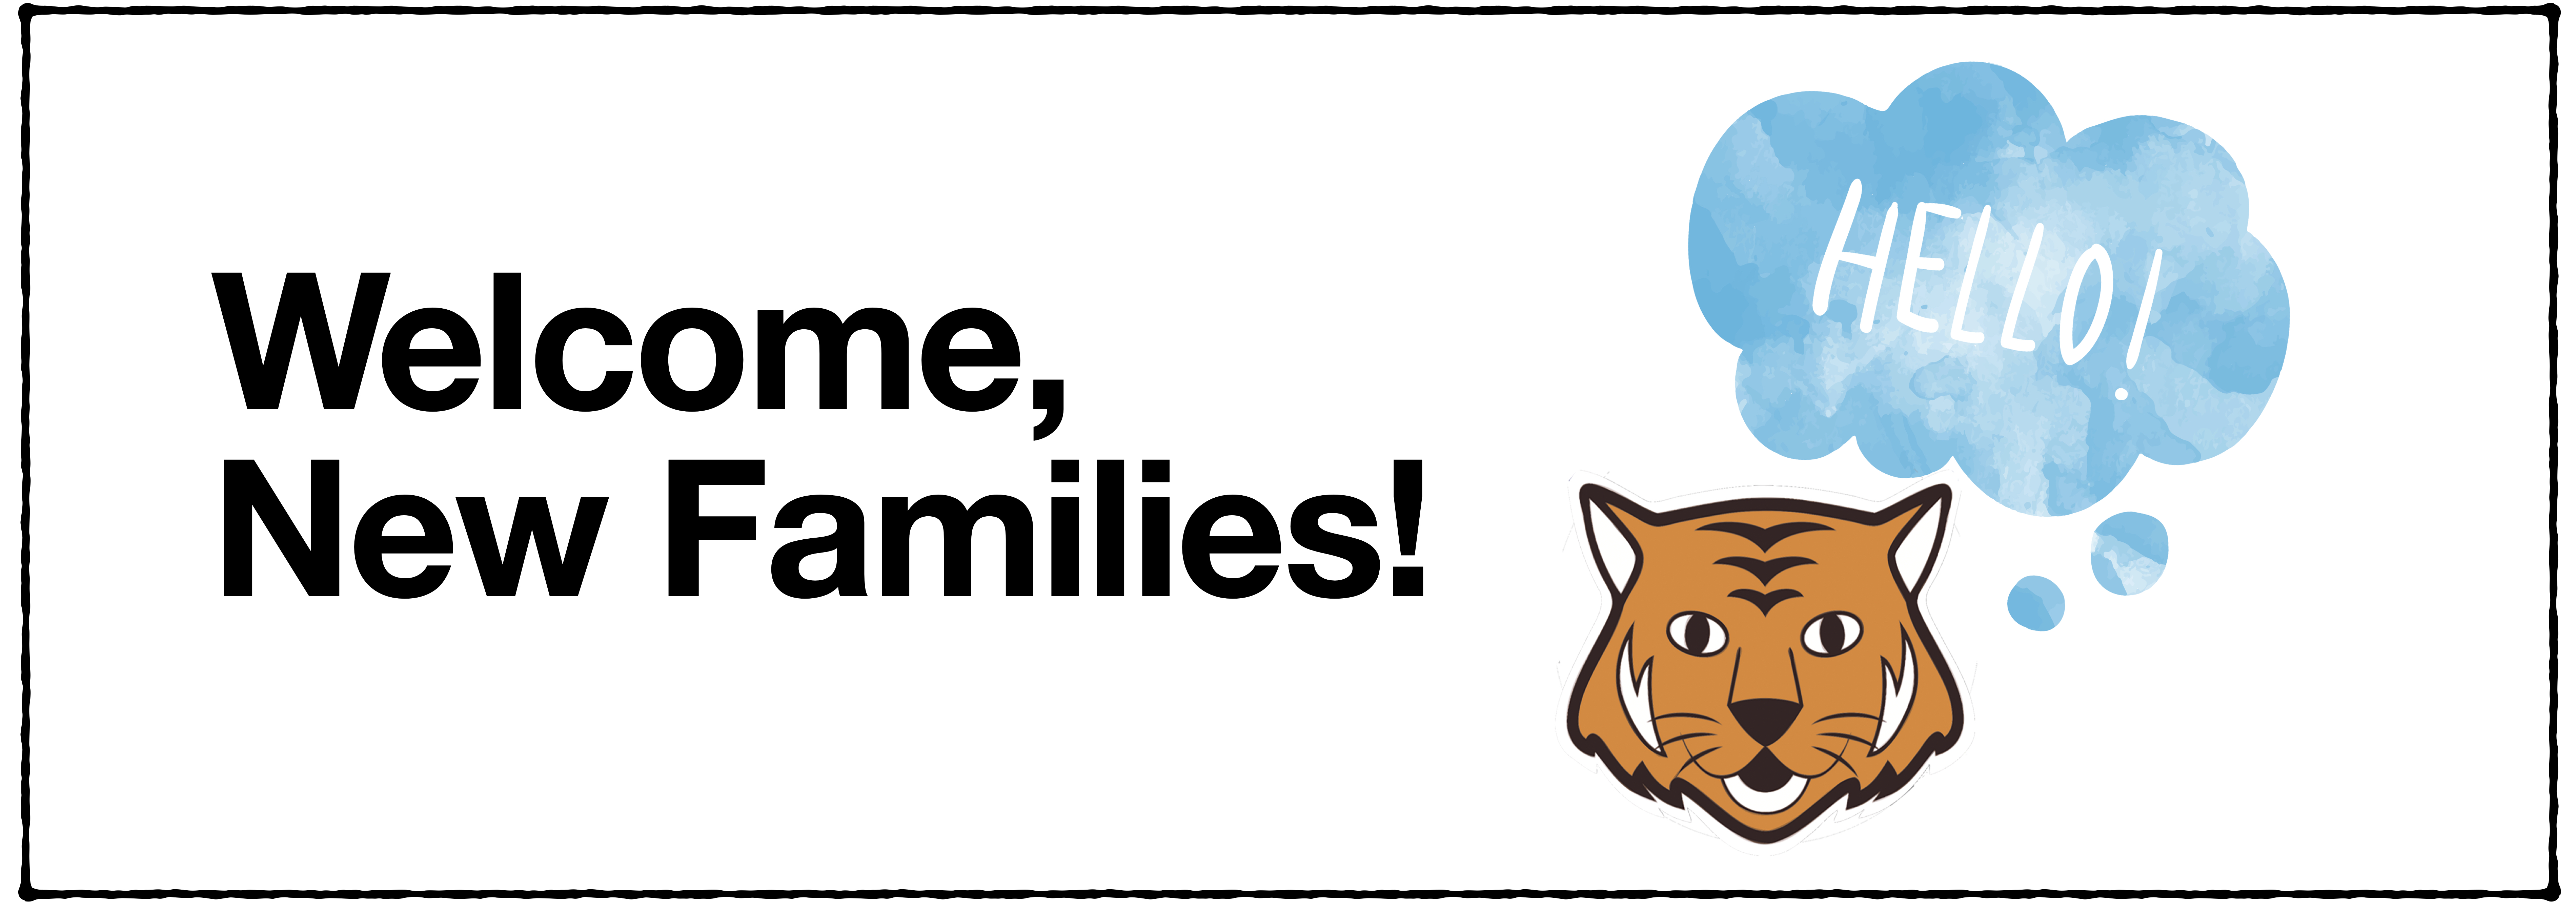 Welcome, New Families